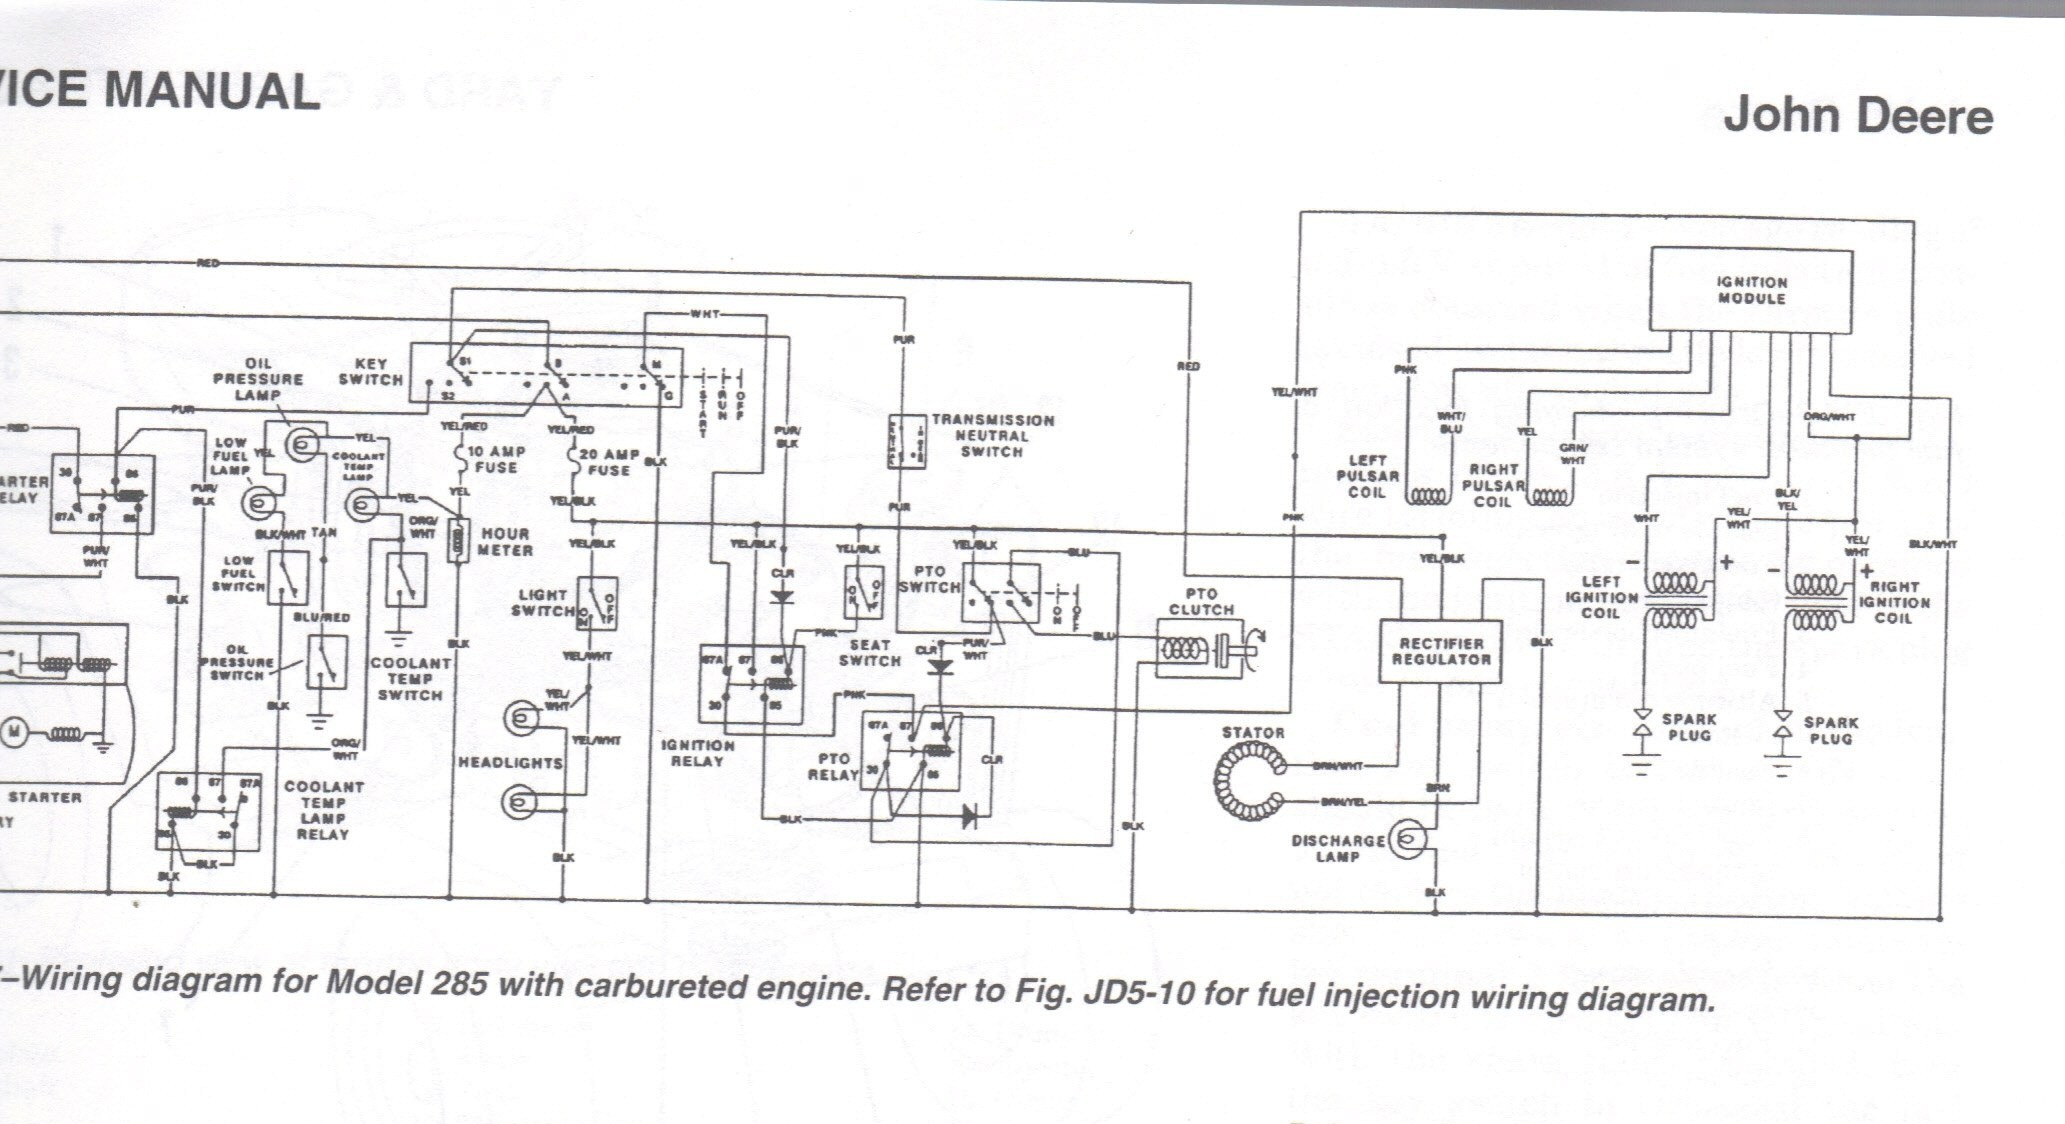 audi a4 starter wiring diagram wiring diagrams schematics audi 2001 ecm diagram  audi a2 engine diagram